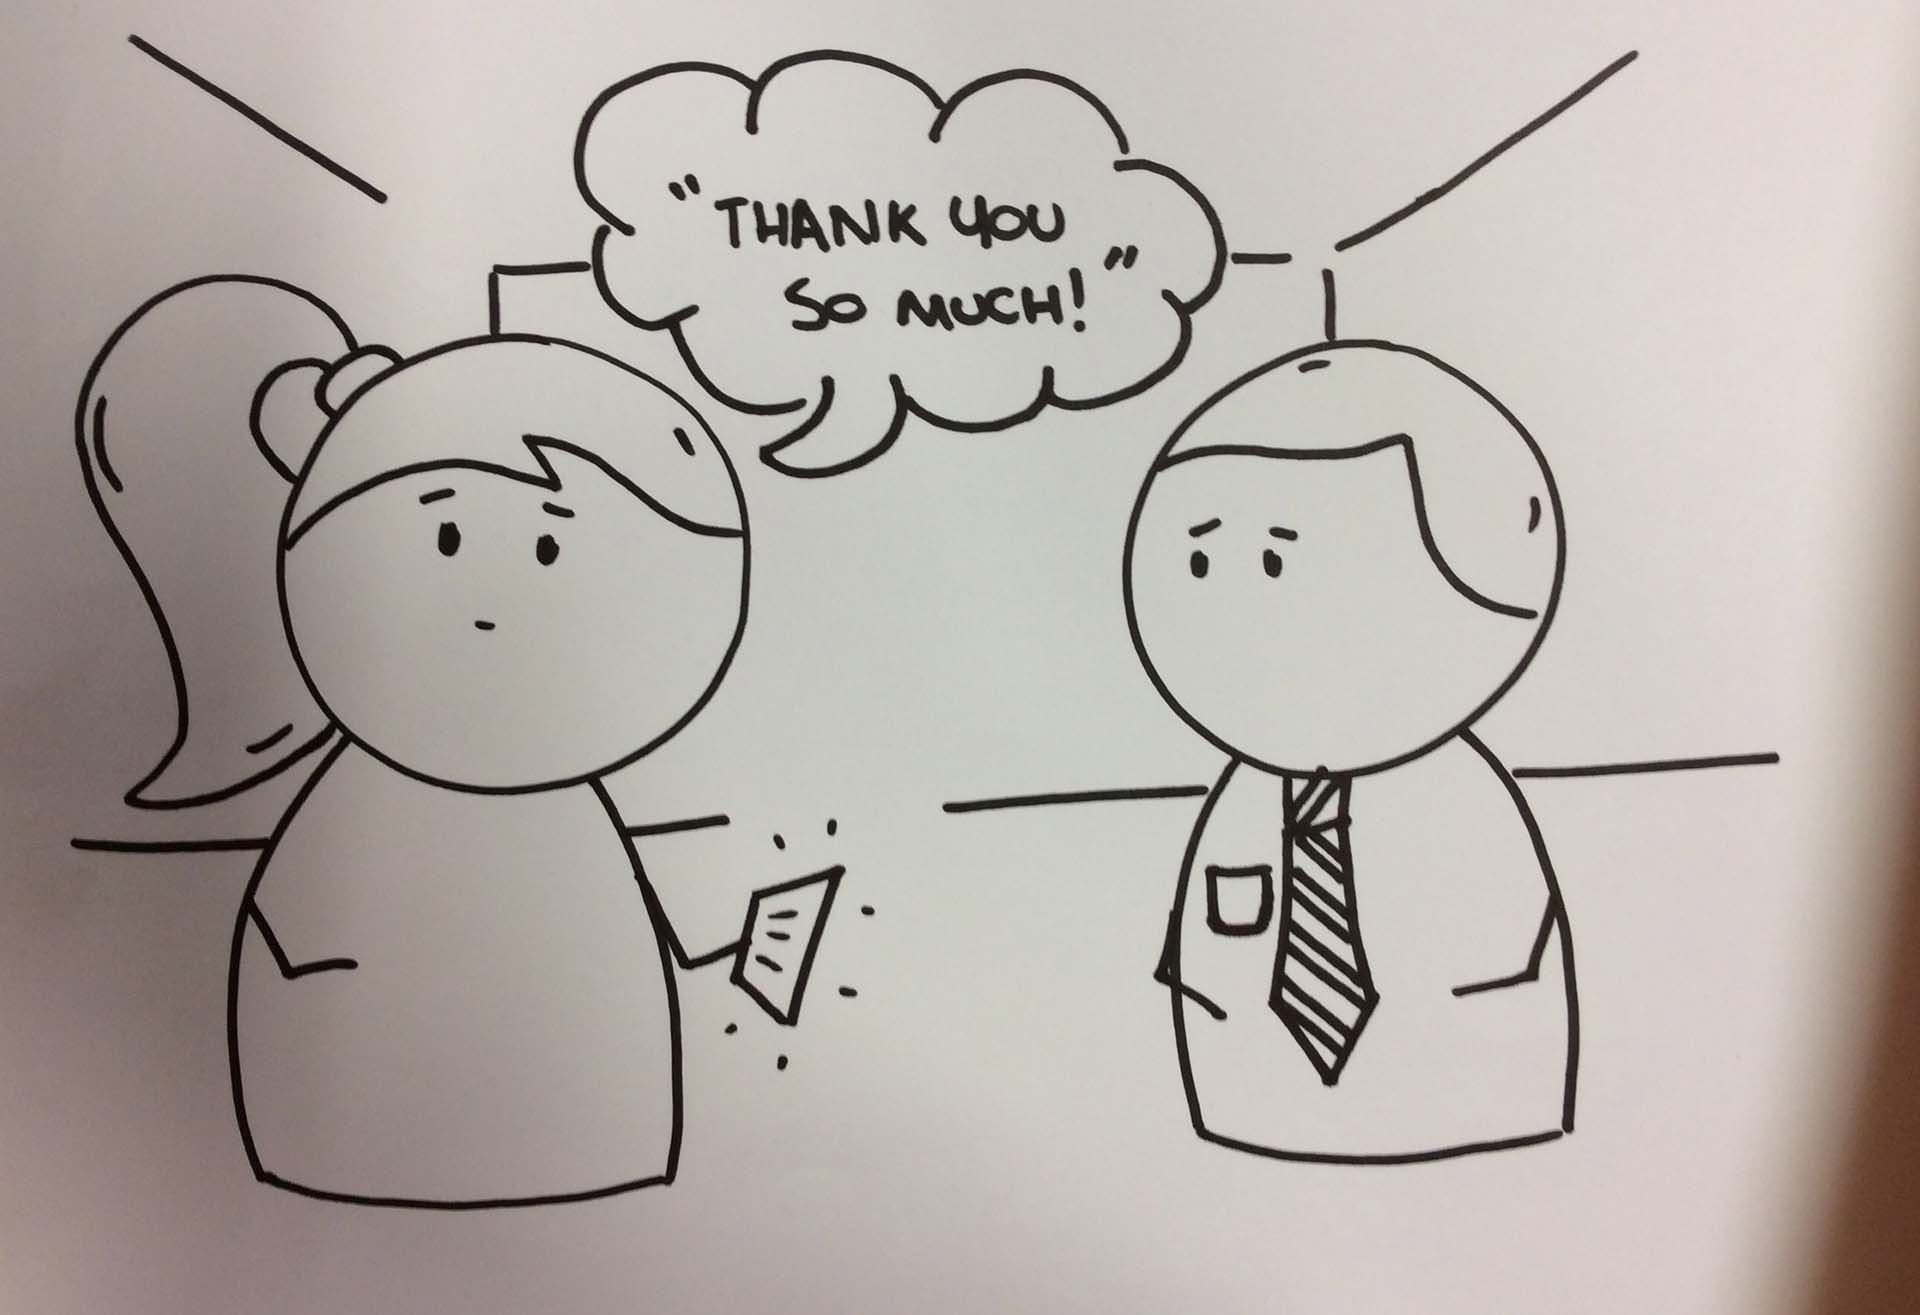 Cartoon graphic of a customer service interaction